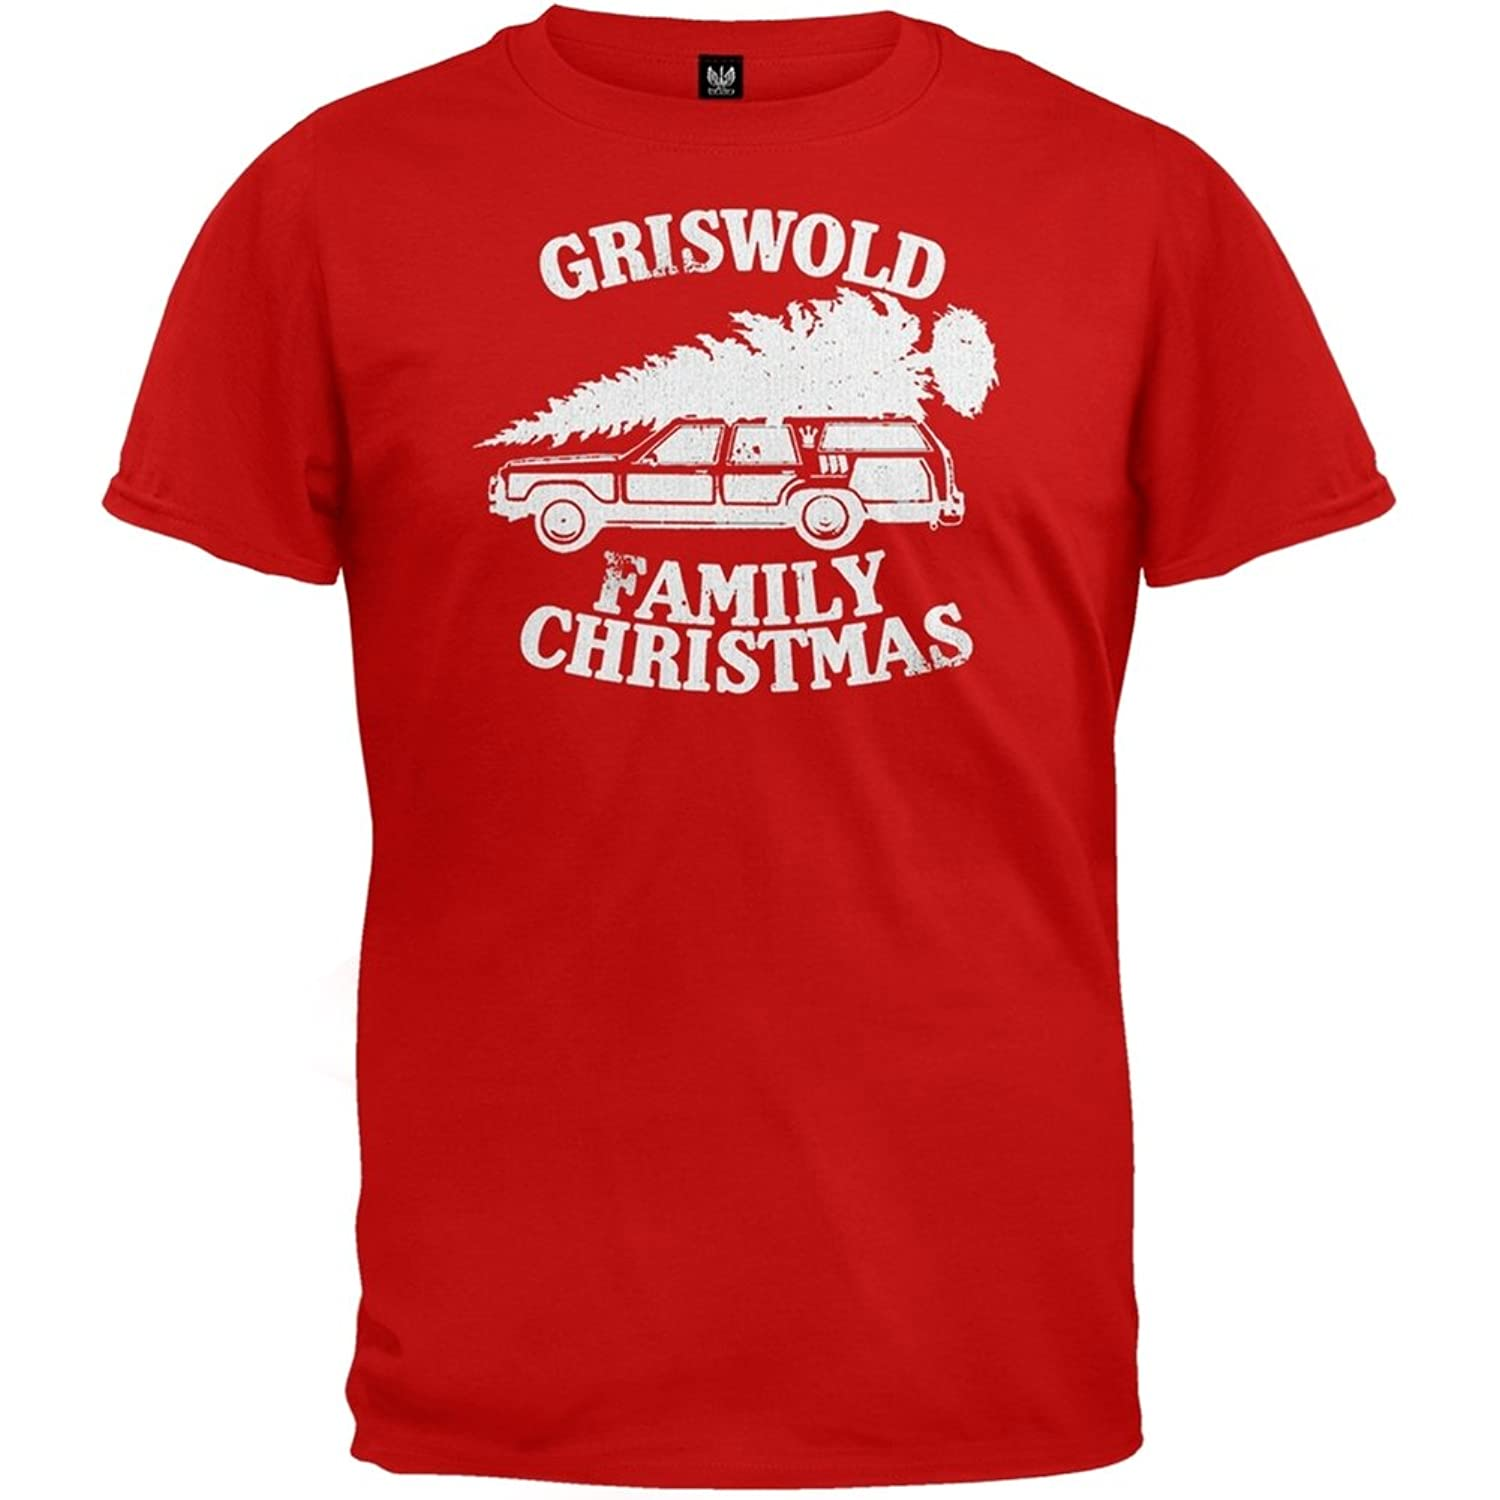 National lampoon s christmas vacation cousin eddie t shirt